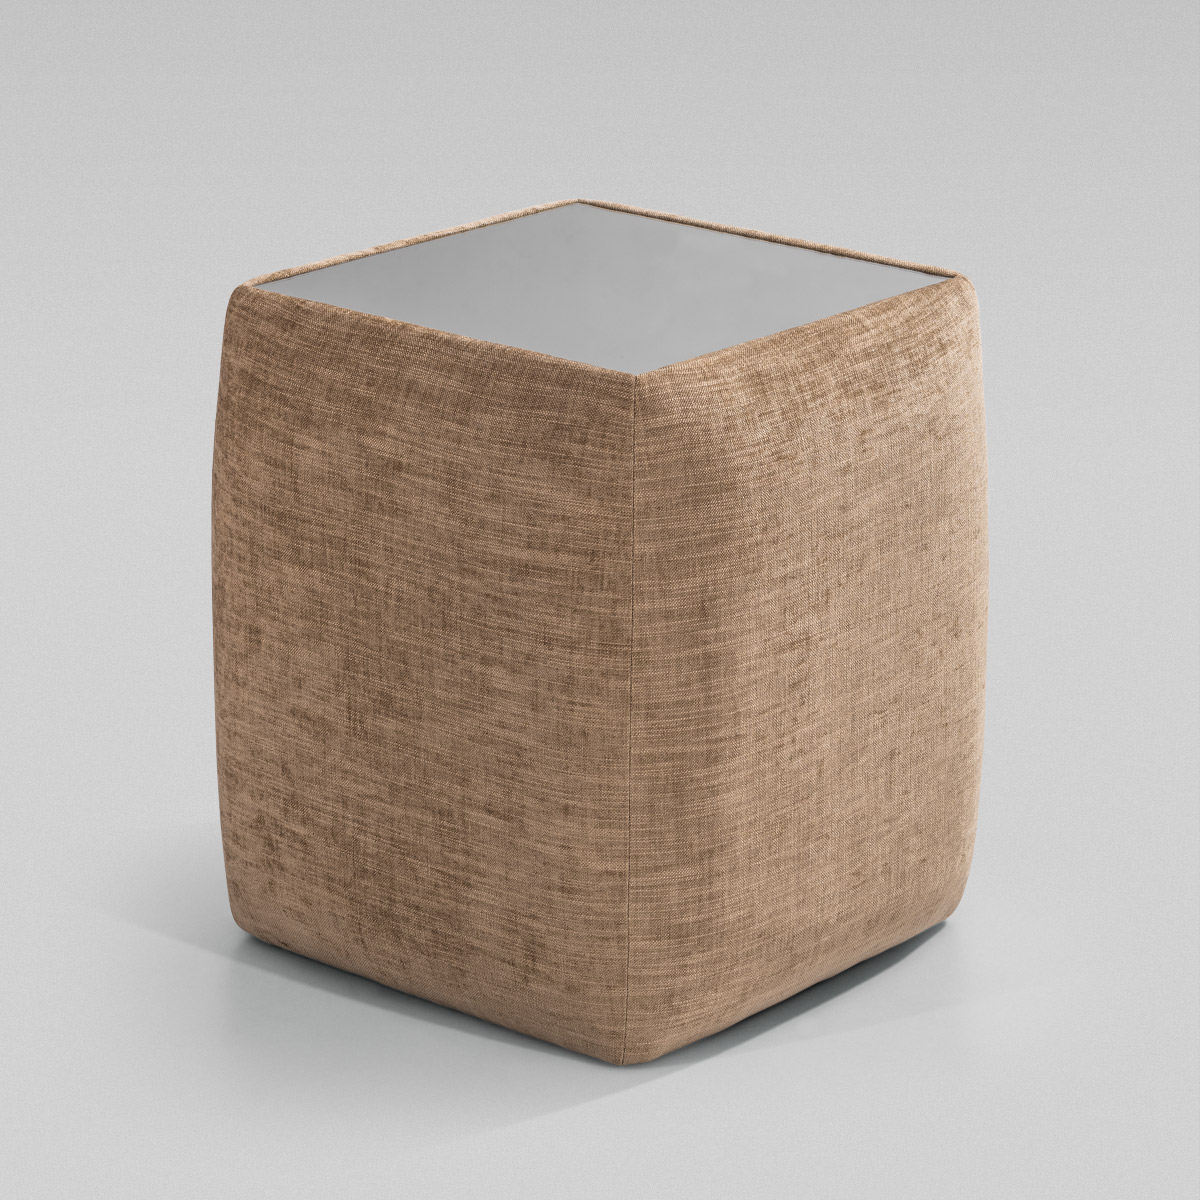 rounded 40 Rounded 40 Bedside table colunex rounded40 side table 01